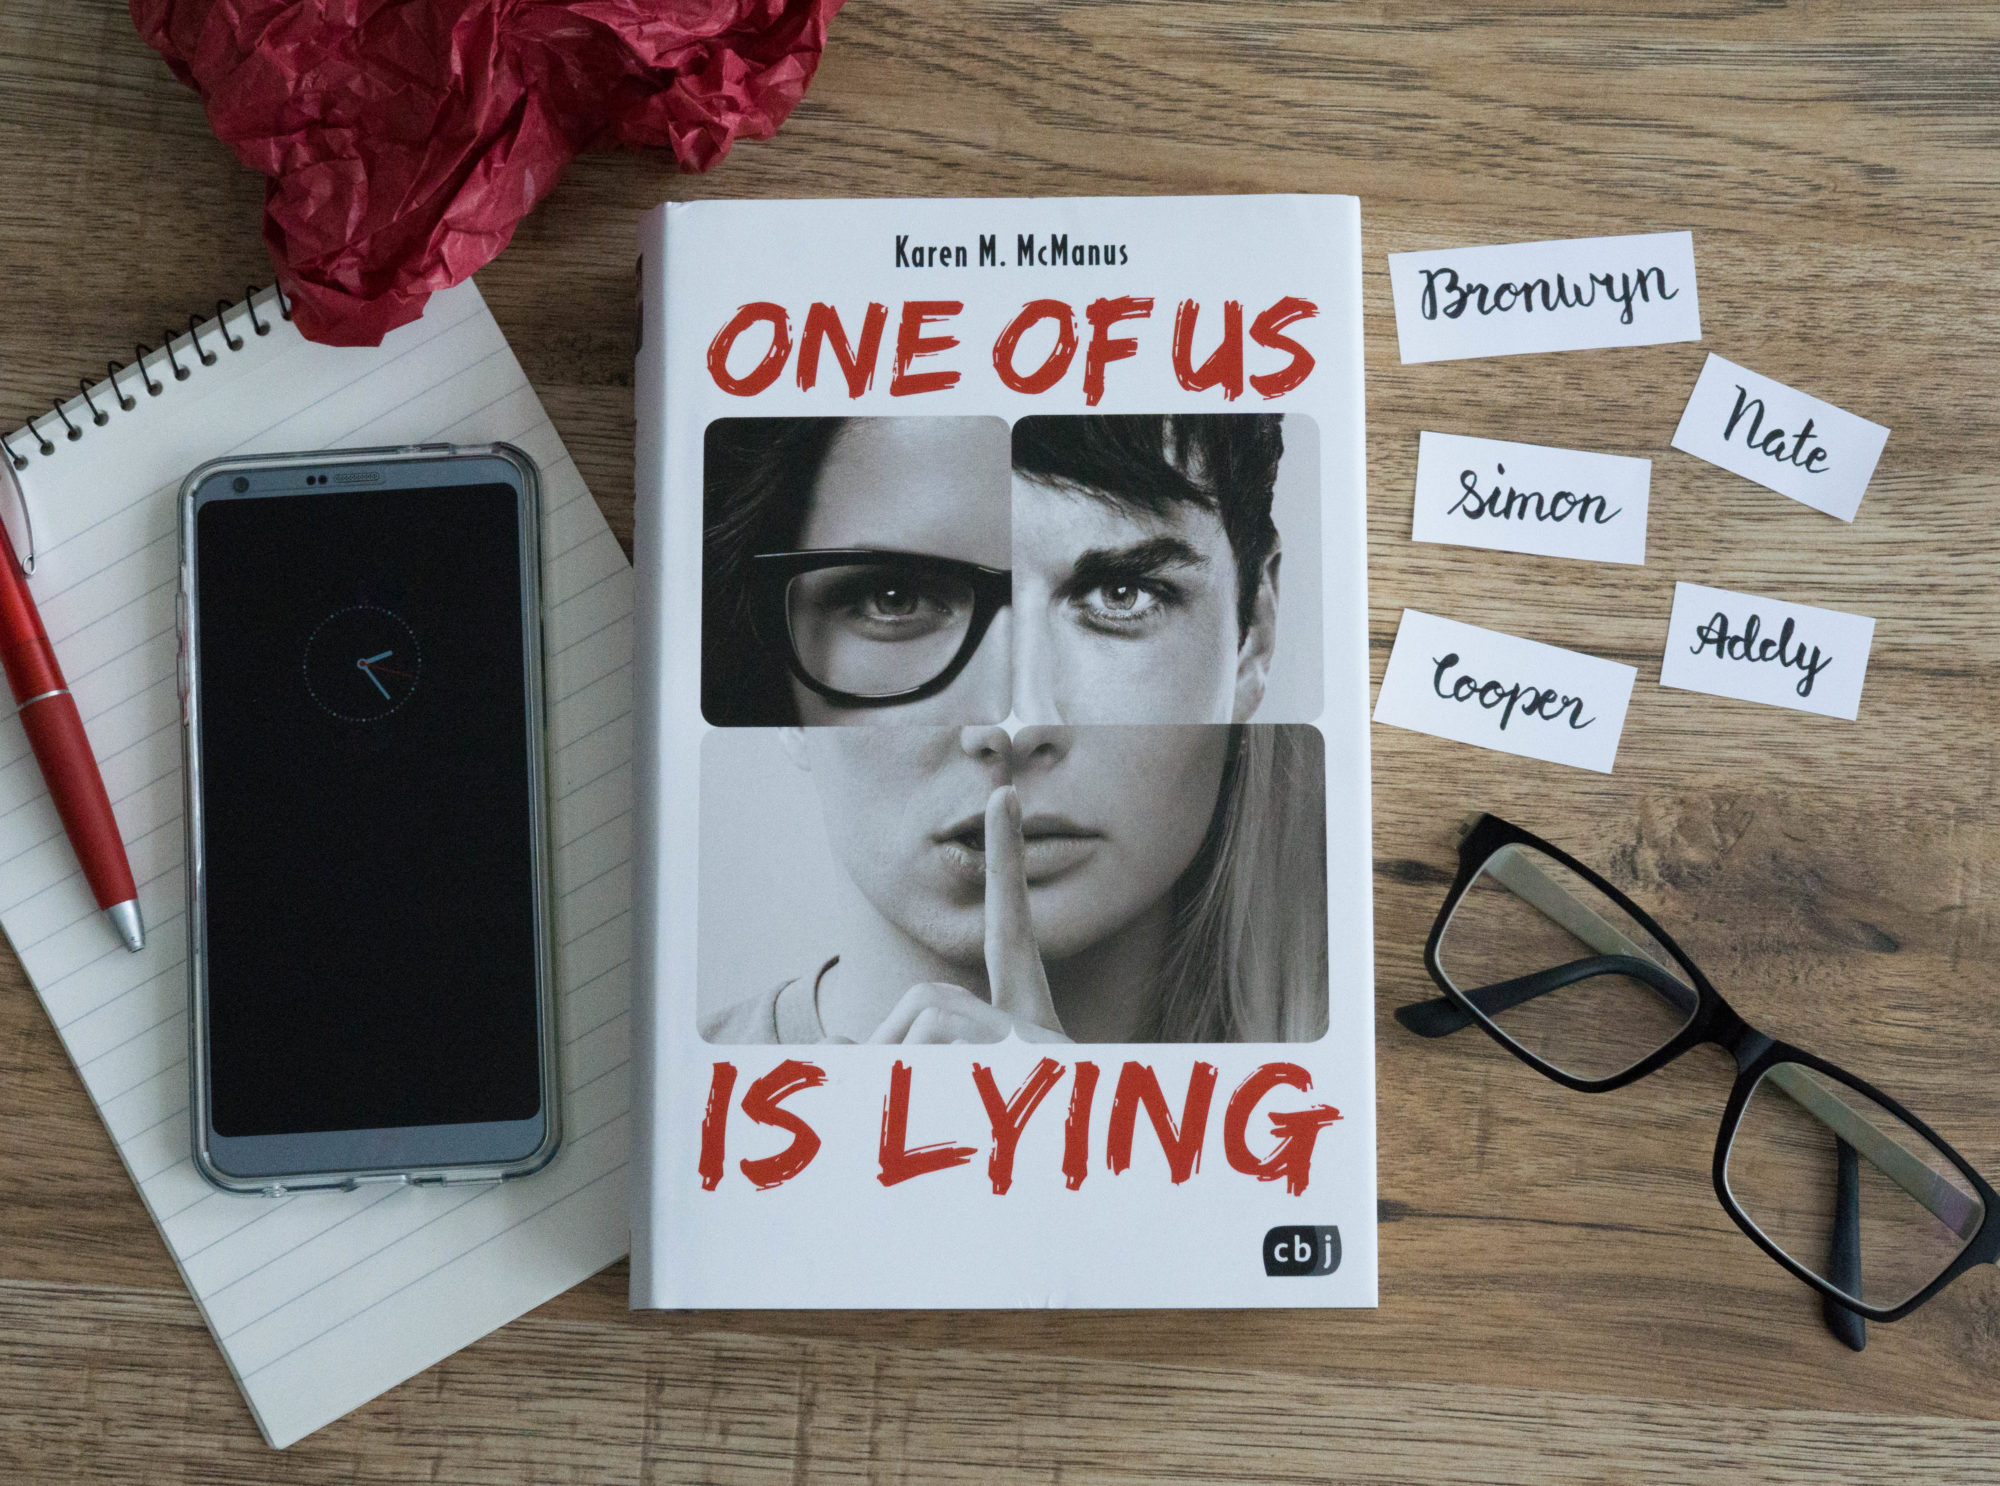 One of us is lying – Karen M. McManus graphic